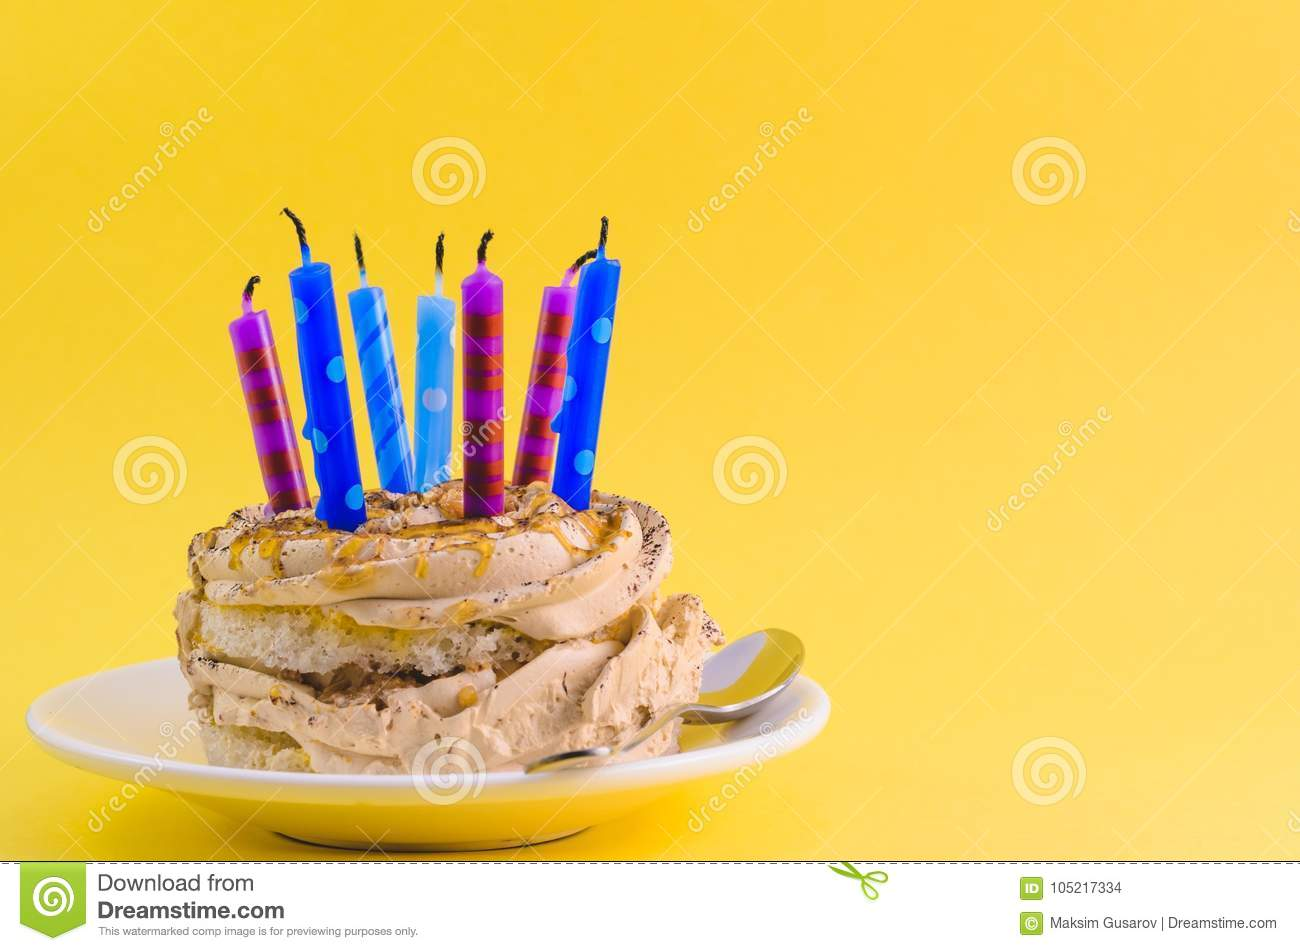 Remarkable Chocolate Cake With Cream And Lots Of Candles Stock Photo Image Funny Birthday Cards Online Hendilapandamsfinfo